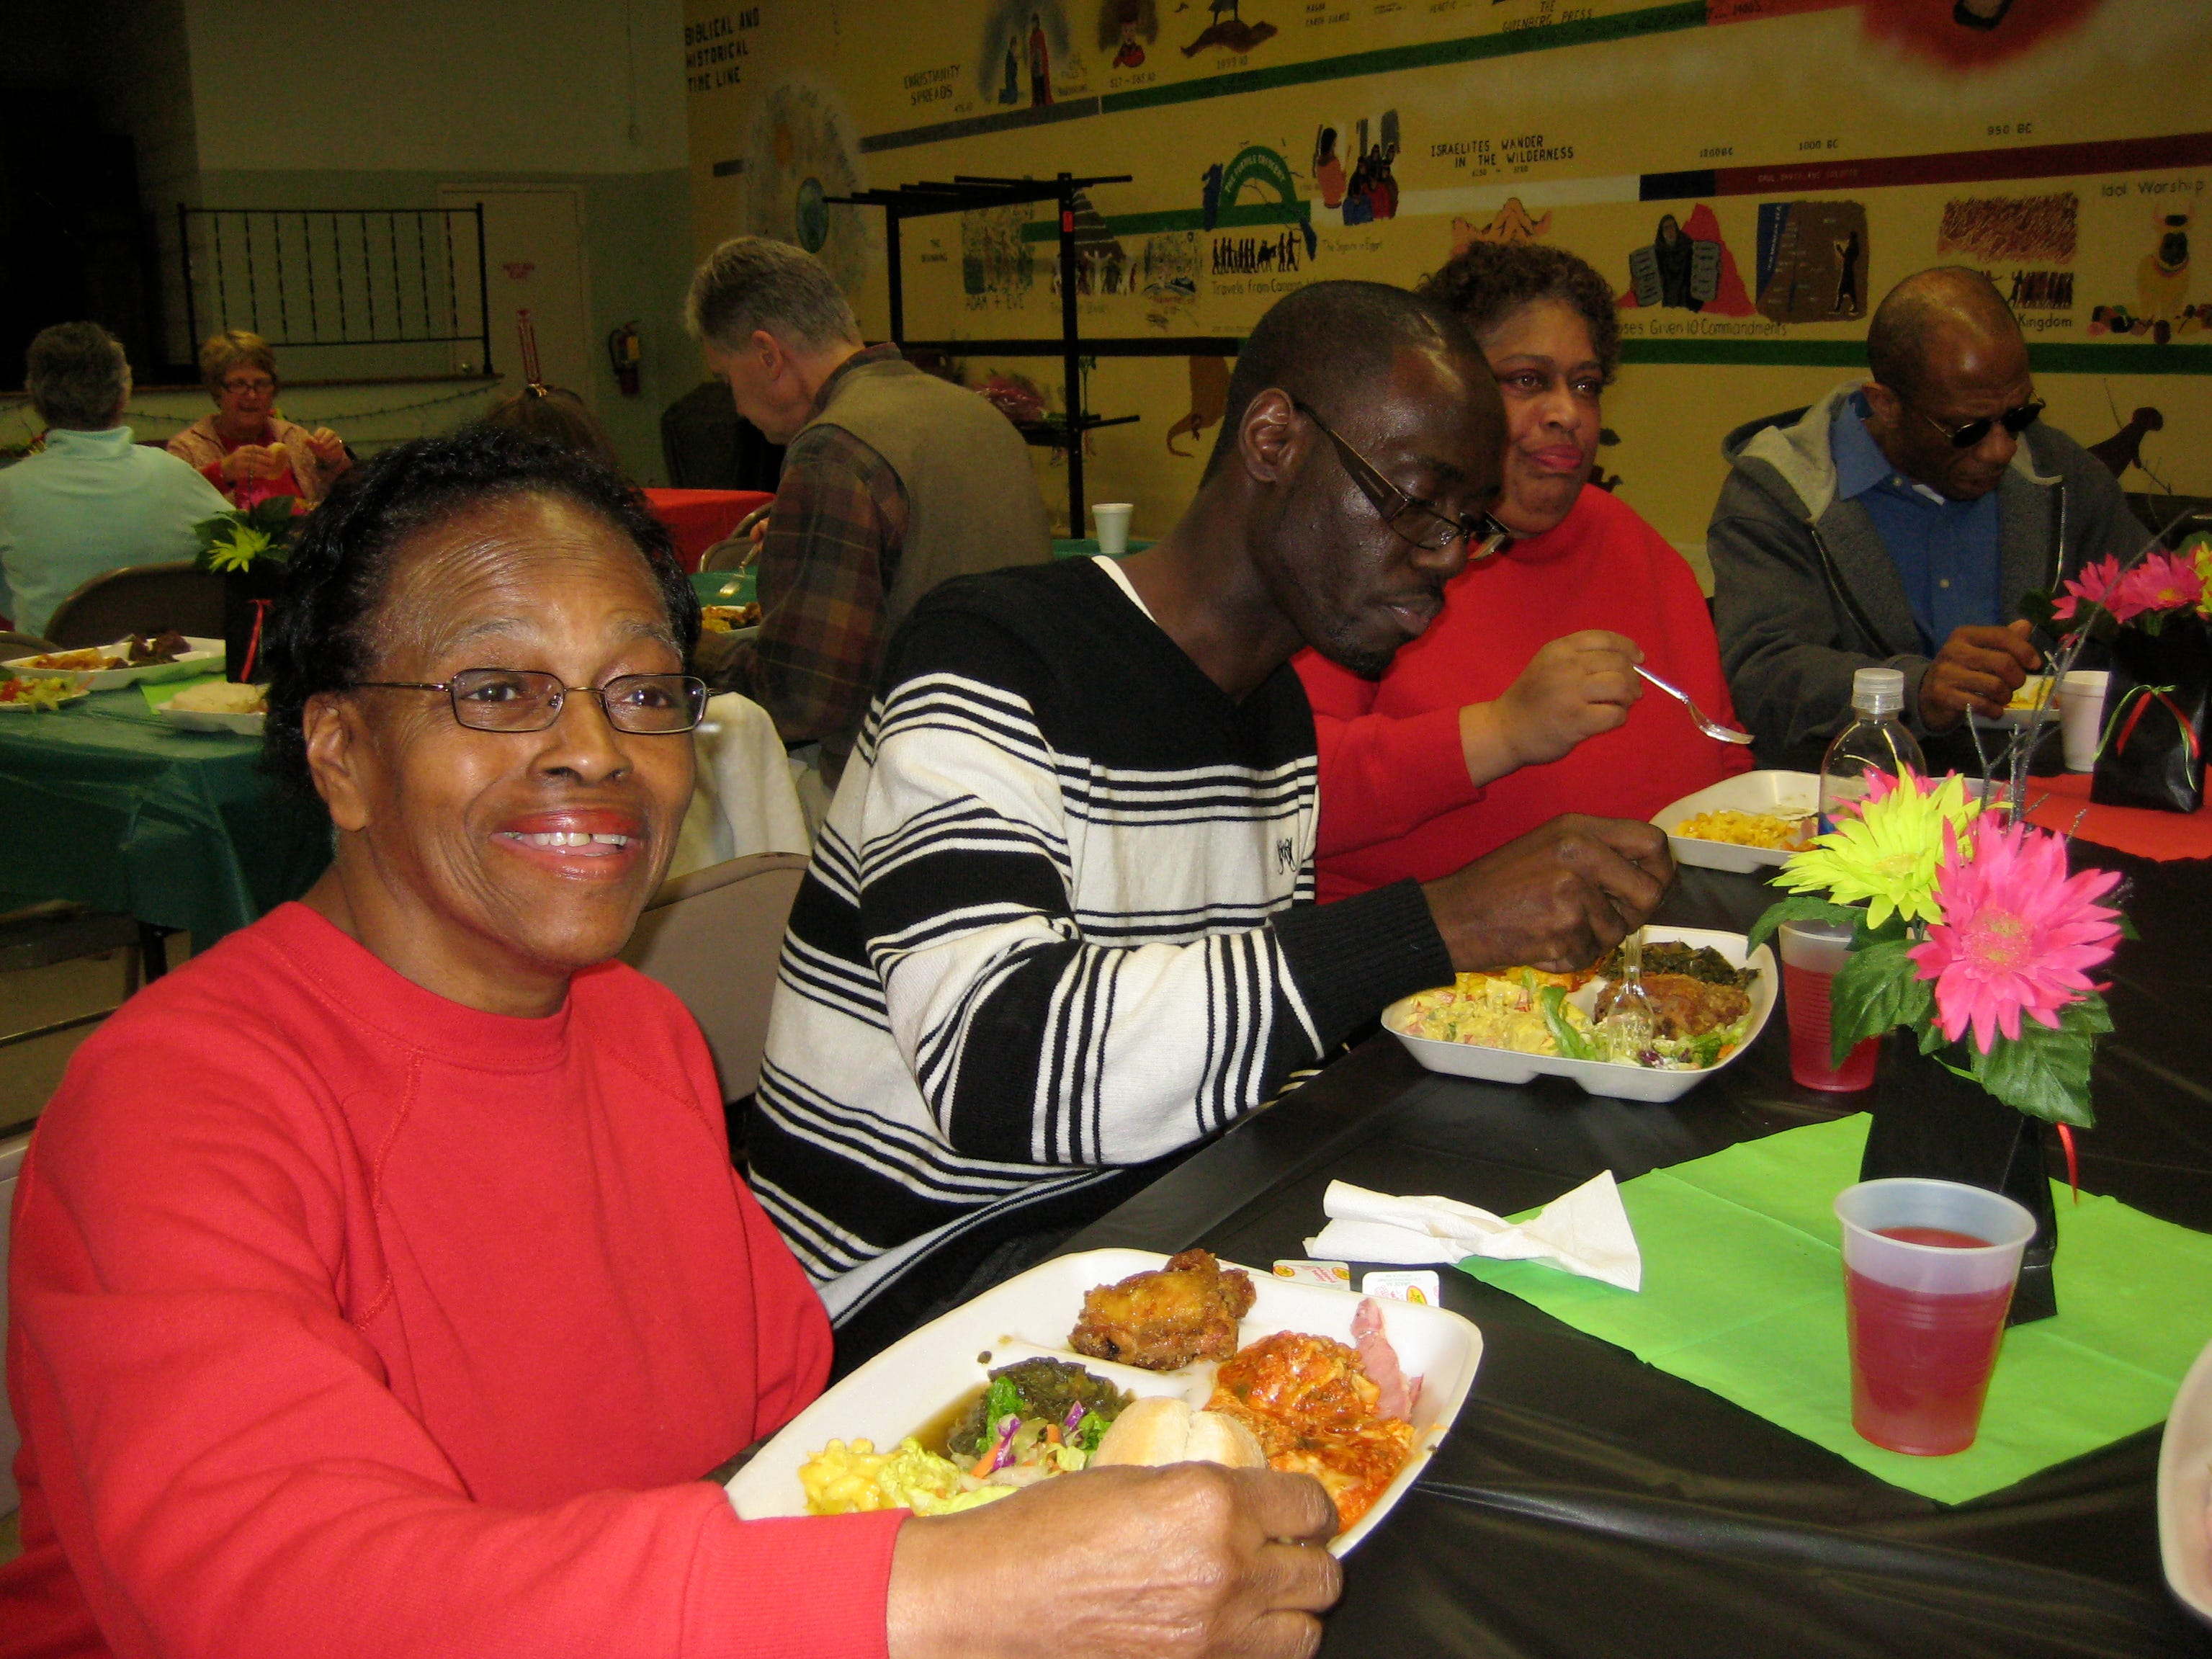 2011: Edie Phoreman, left, hosted a Black History Month dinner at her Binghamton church on Friday. Peter Holoman, center, the first boy to come under her tutelage in Double-Dutch, some 30 years ago. To his left is Phoreman's daughter Rita Phoreman.